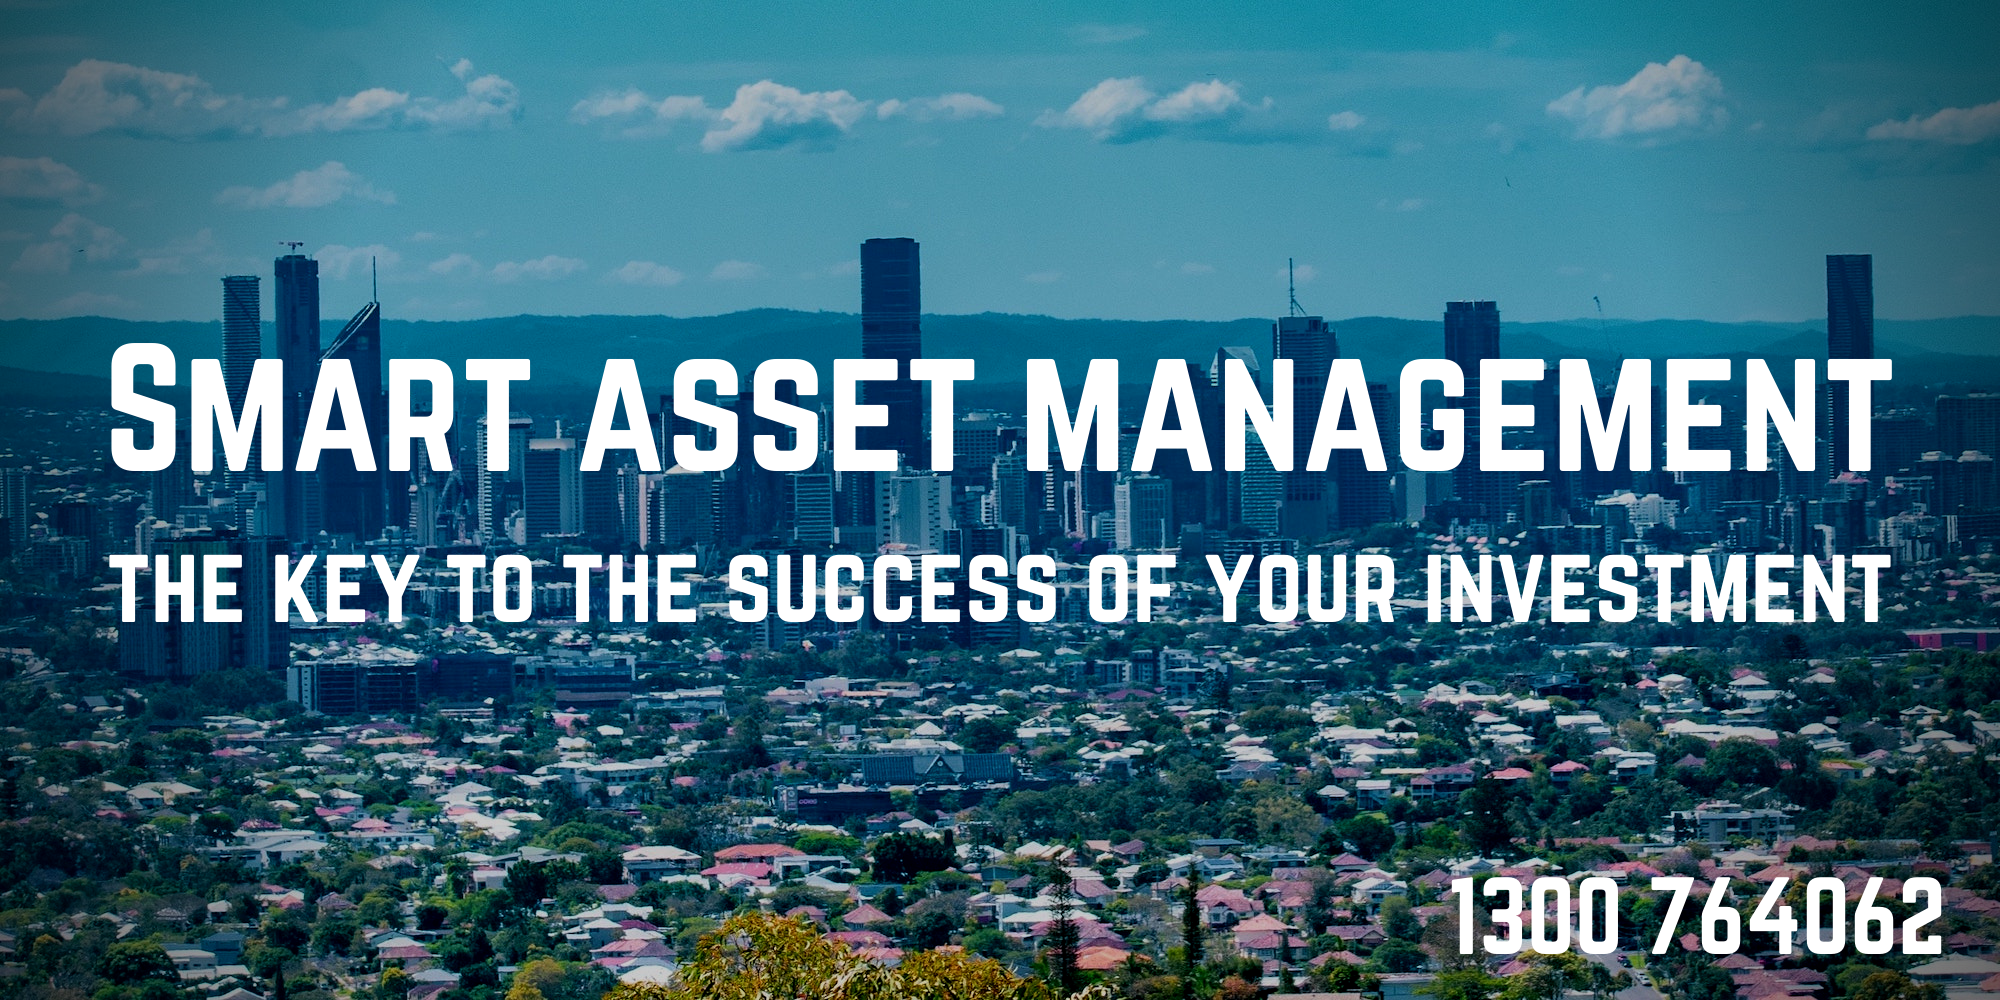 The key to the success of your investment